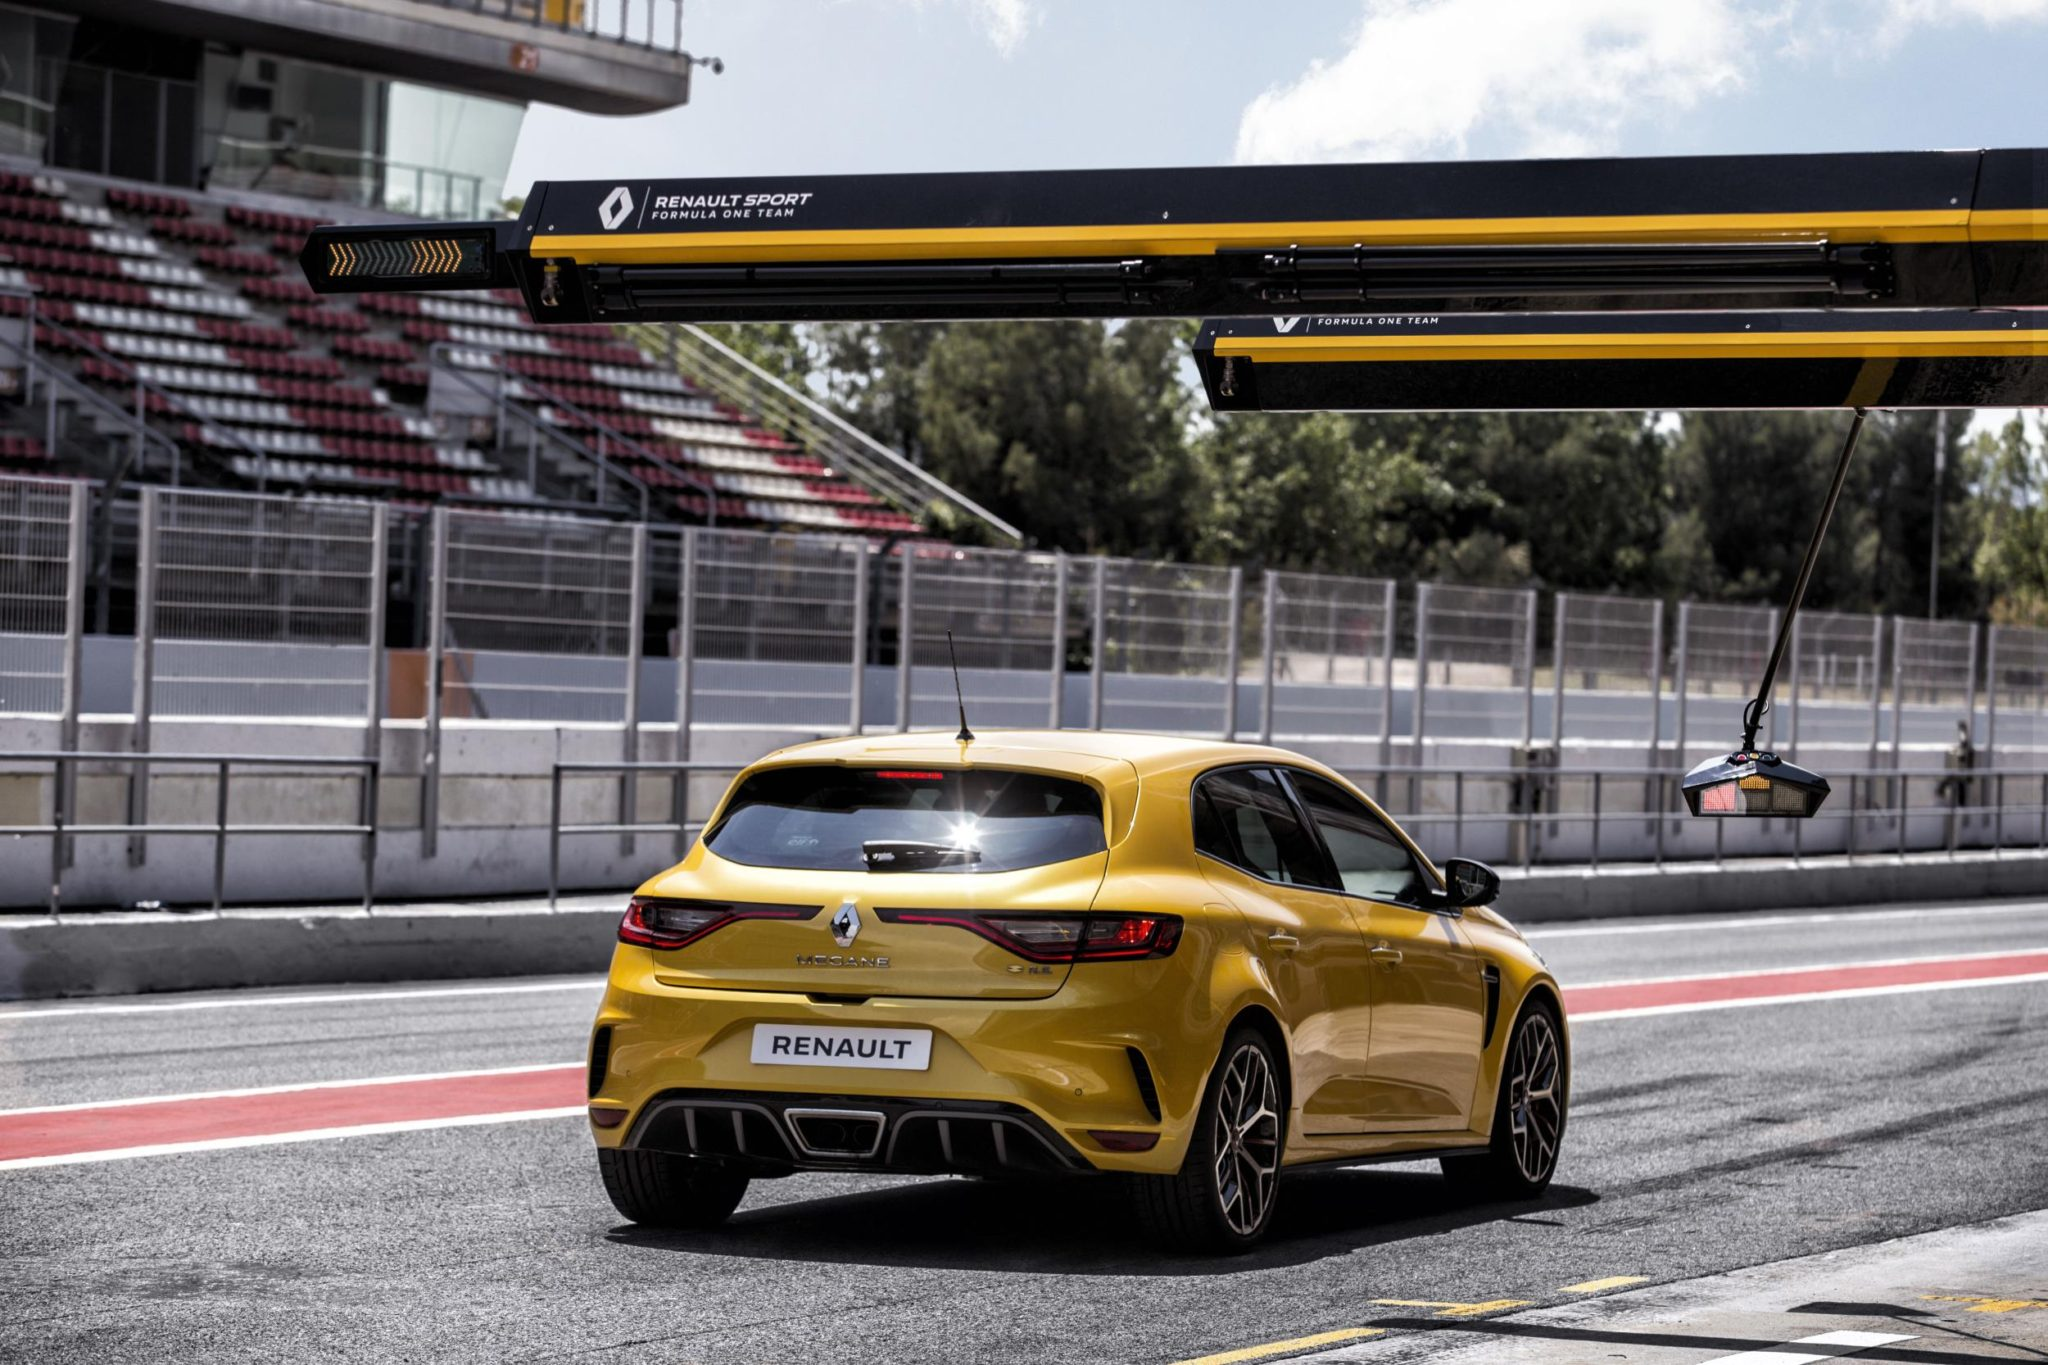 RENAULT SPORT UK ANNOUNCES EXCLUSIVE CUSTOMER TRACK DAY